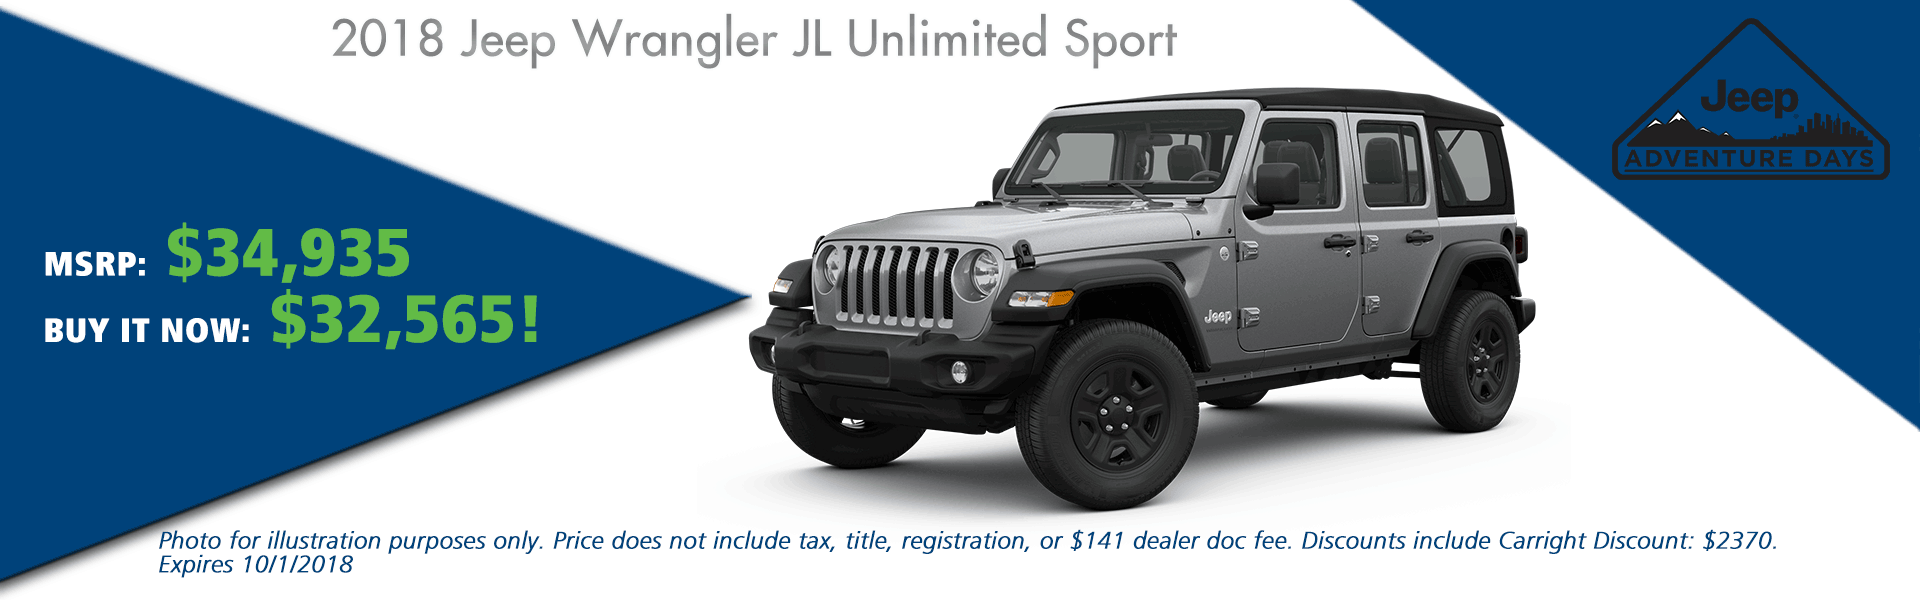 CarRight Chrysler Jeep Dodge Ram, Moon Township, PA Sales Service Body Shop Parts NEW 2018 JEEP WRANGLER UNLIMITED SPORT 4X4